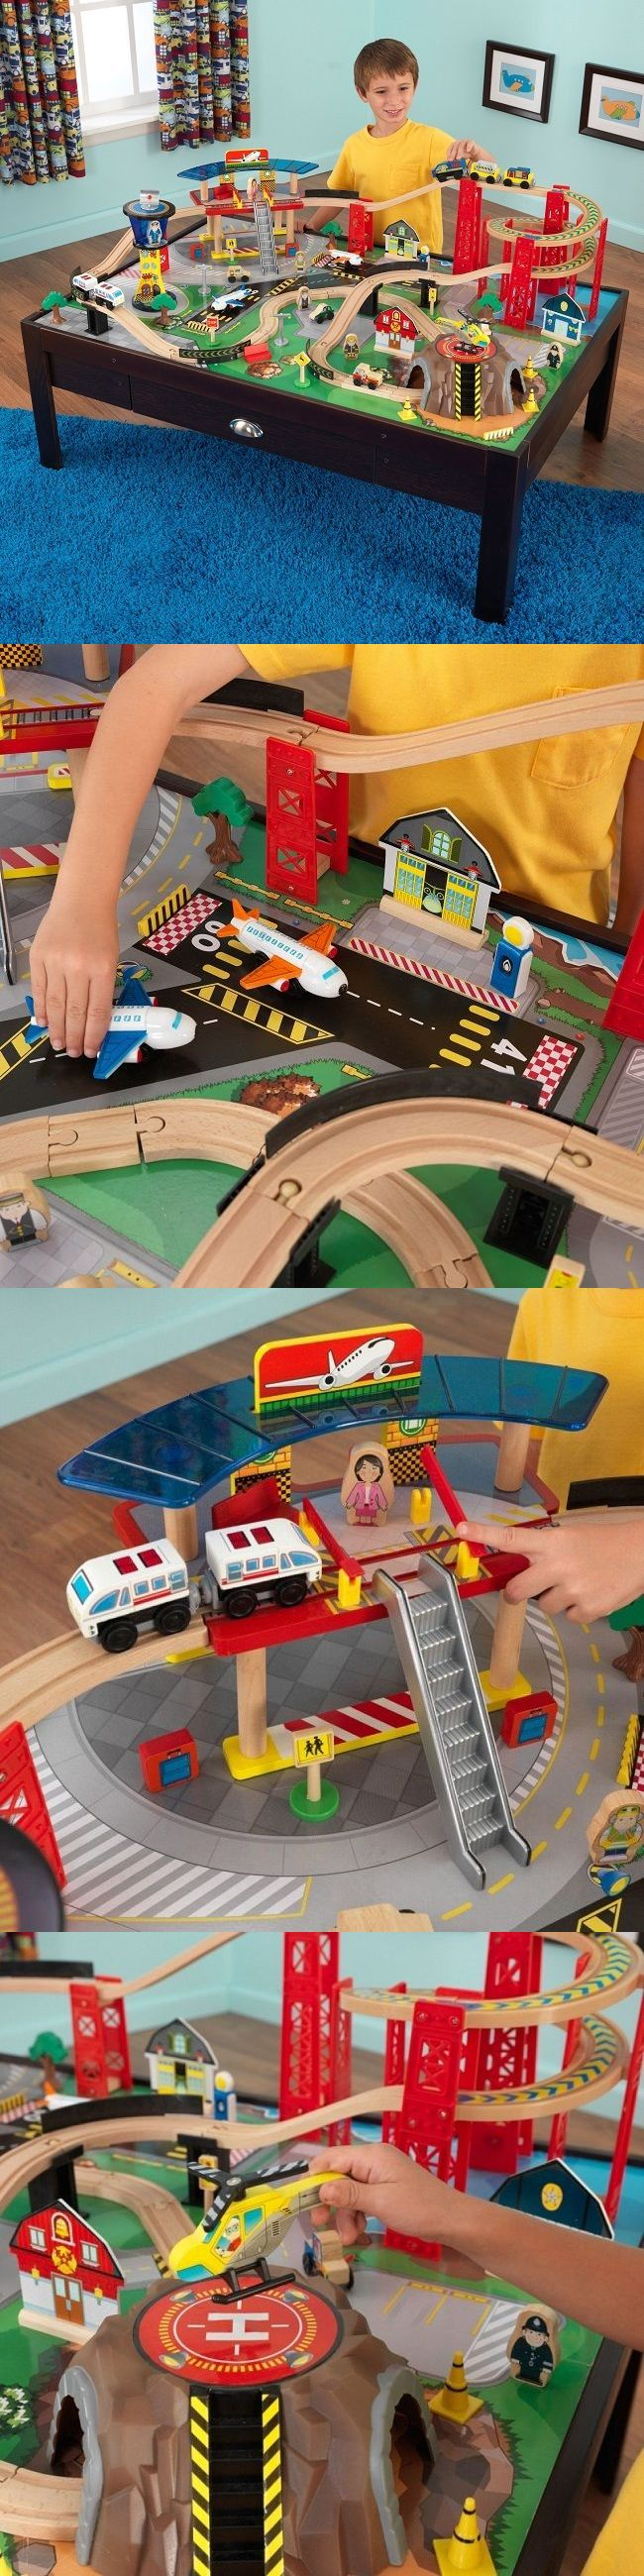 Brio Compatible 16517 Toy Train Table Top Toys For Kid Wooden Set Airport Boy 100 & Brio Compatible 16517: Toy Train Table Top Toys For Kid Wooden Set ...